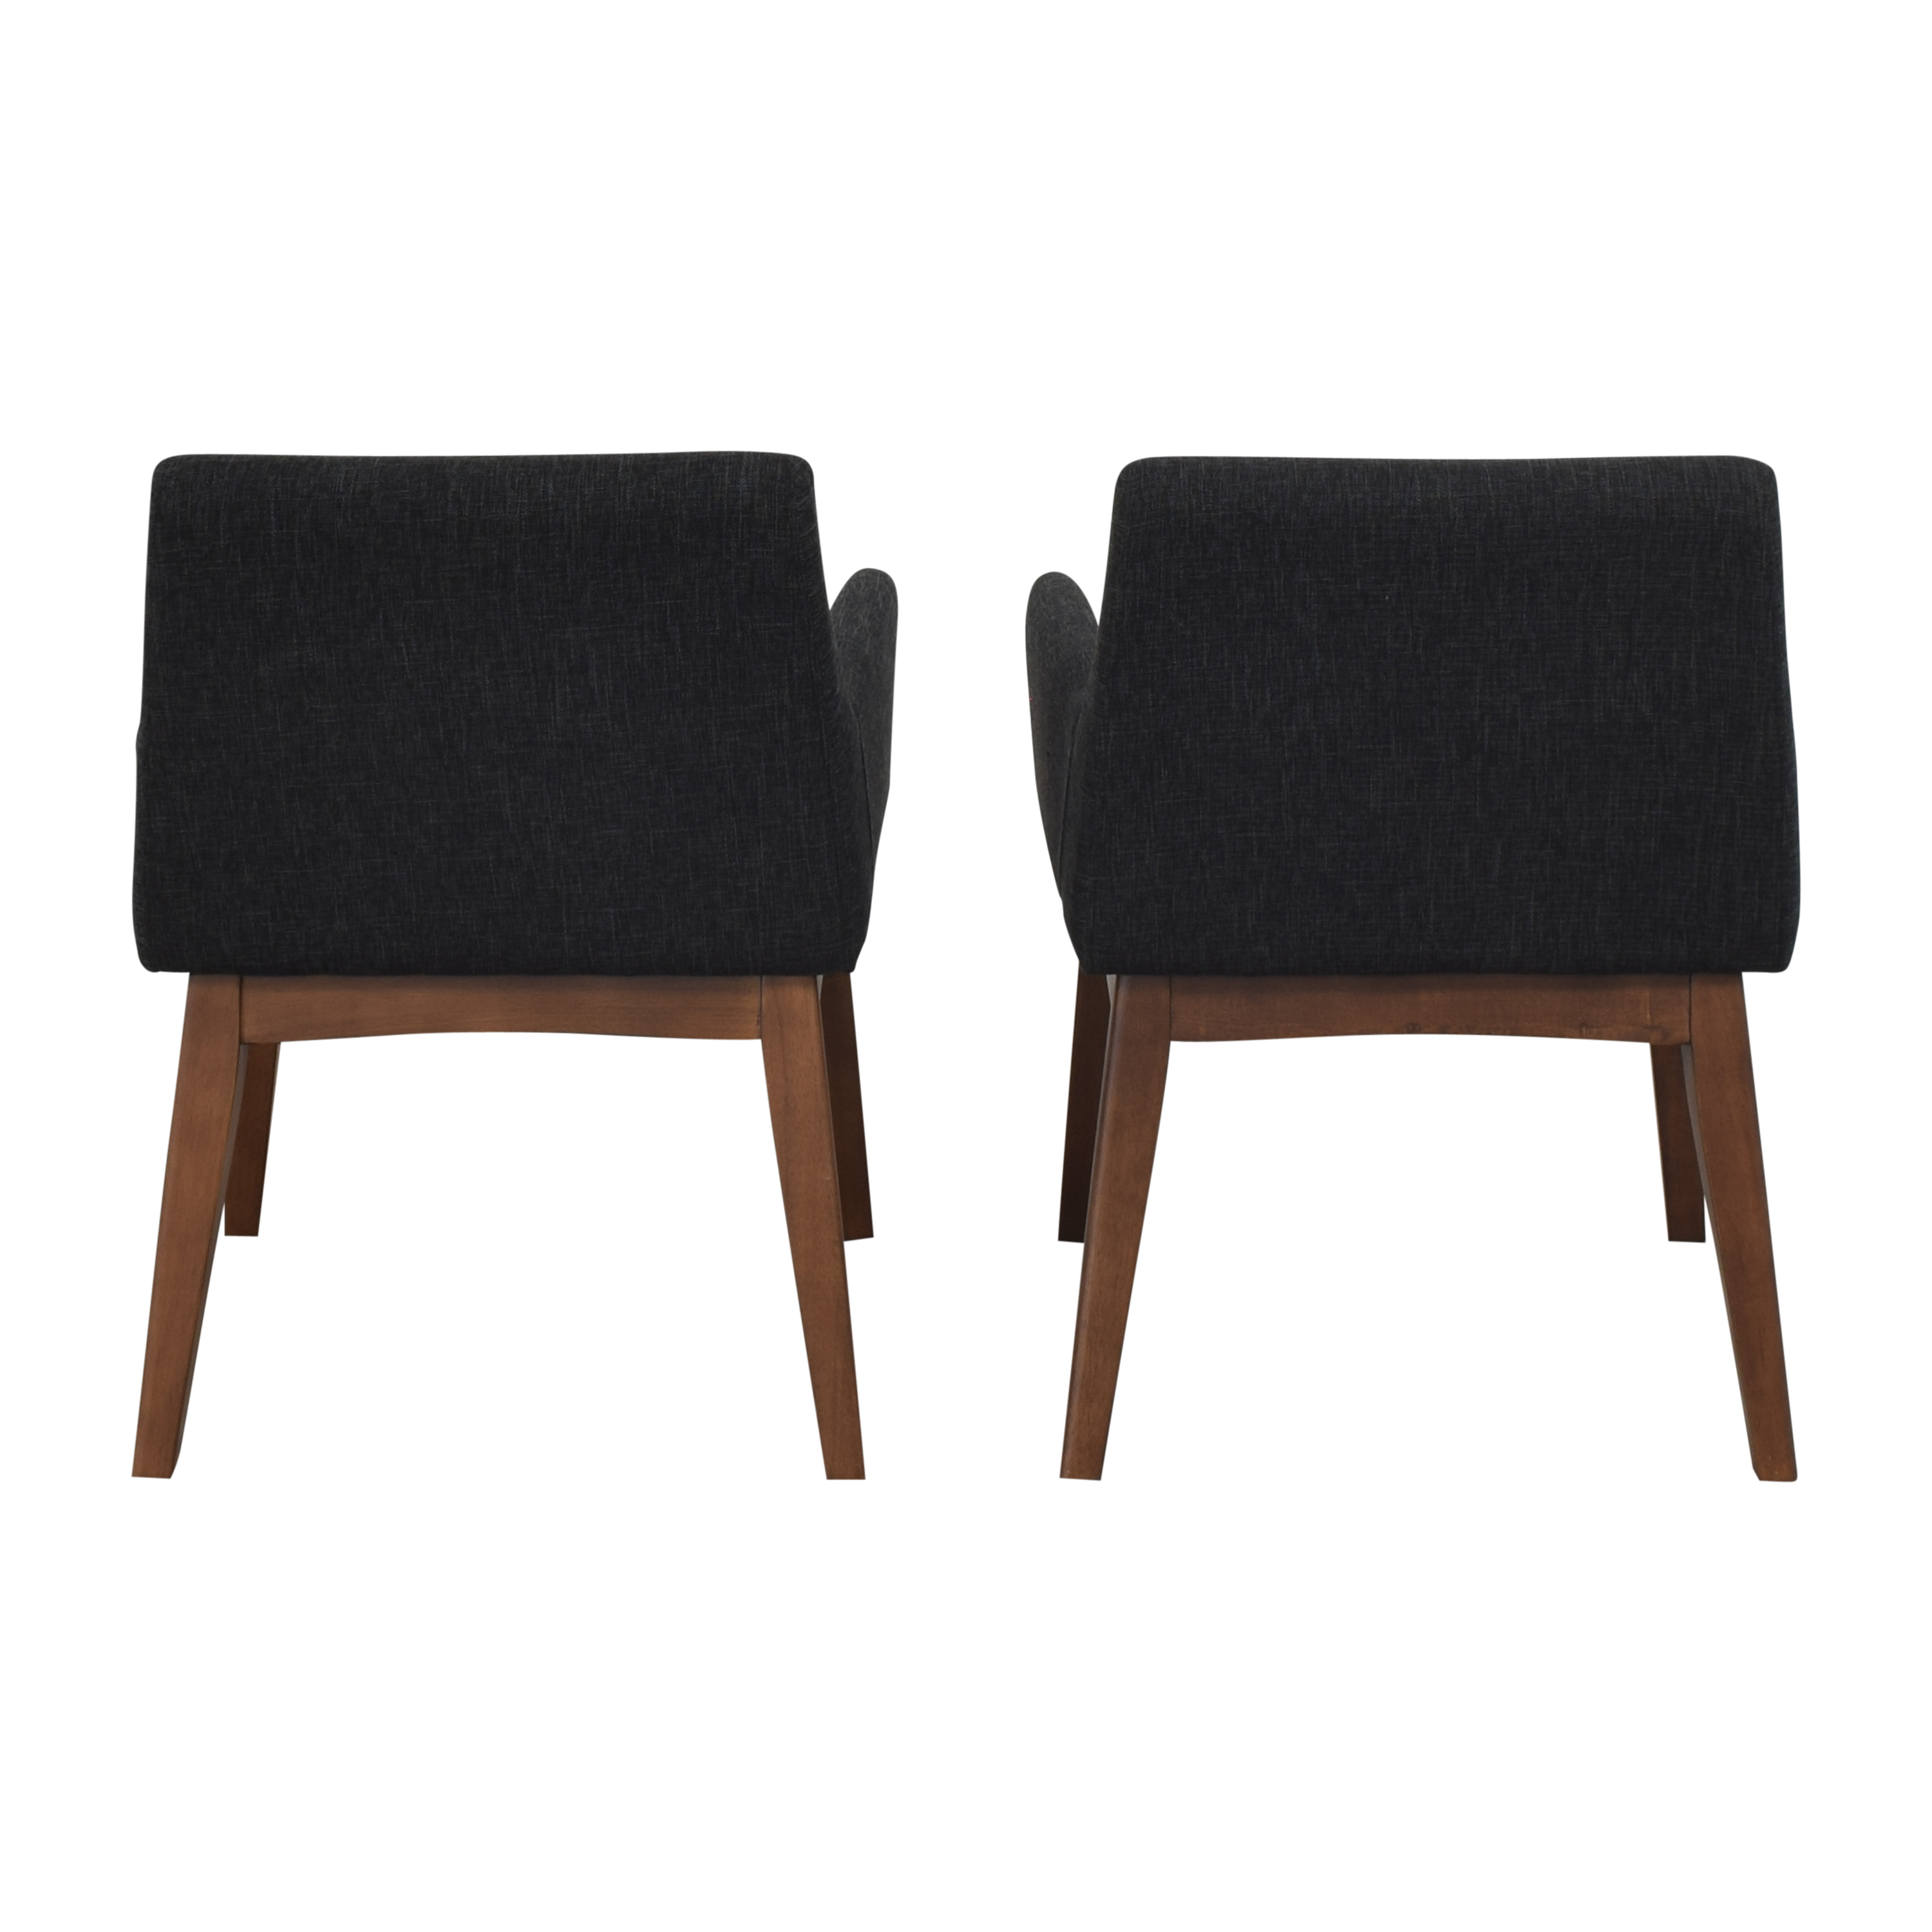 Article Article Chanel Dining Arm Chairs nj